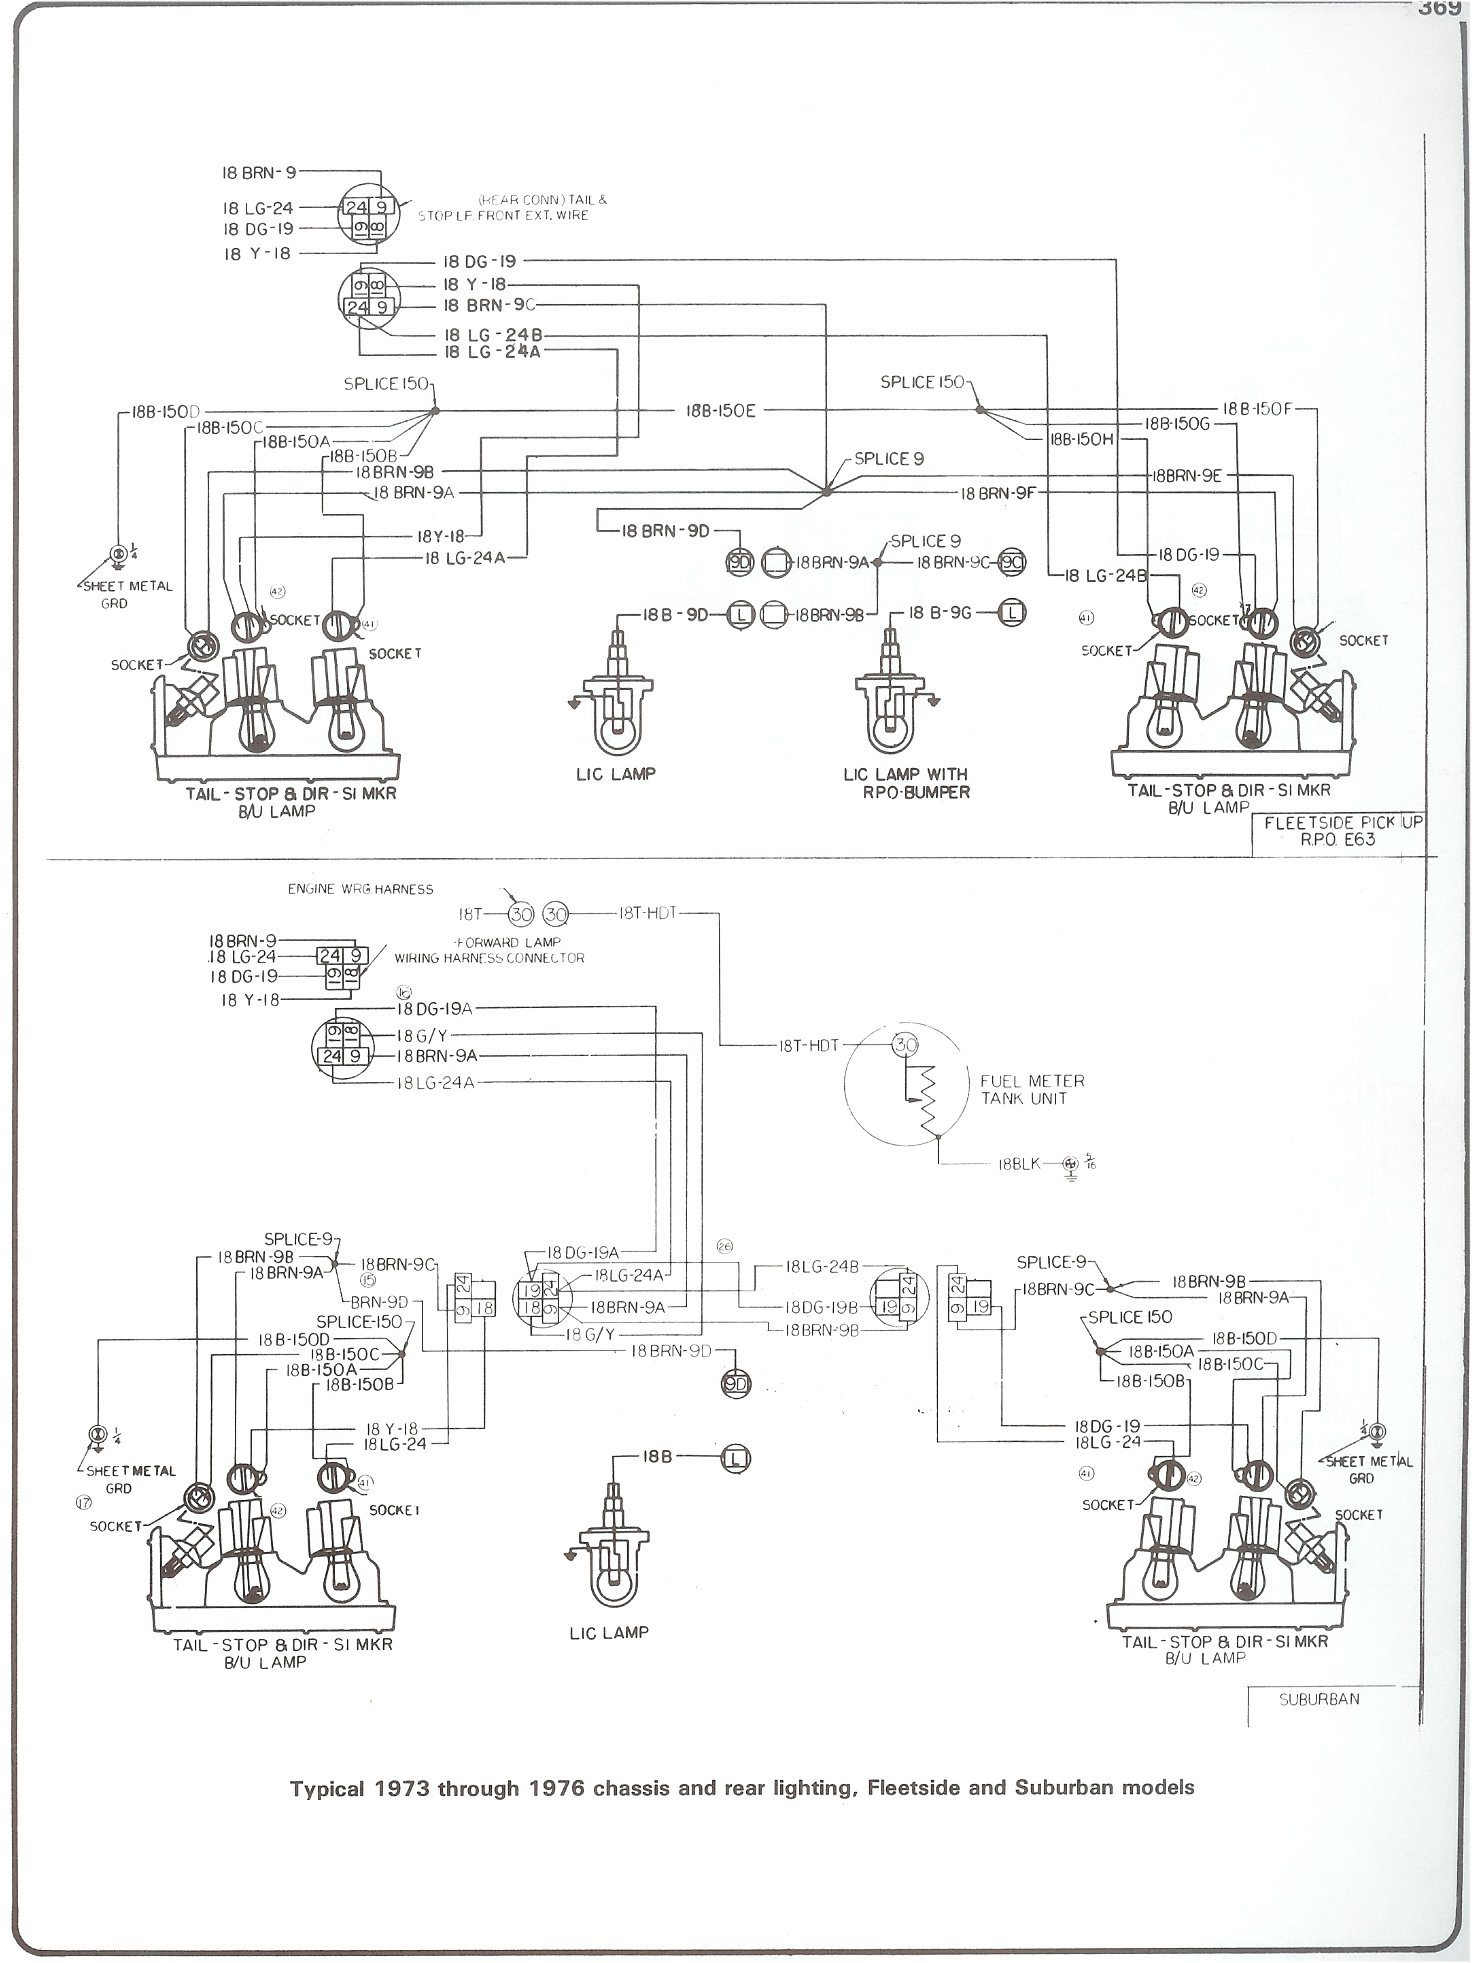 1987 chevy headlight wiring diagram general wiring diagram rh velvetfive co uk